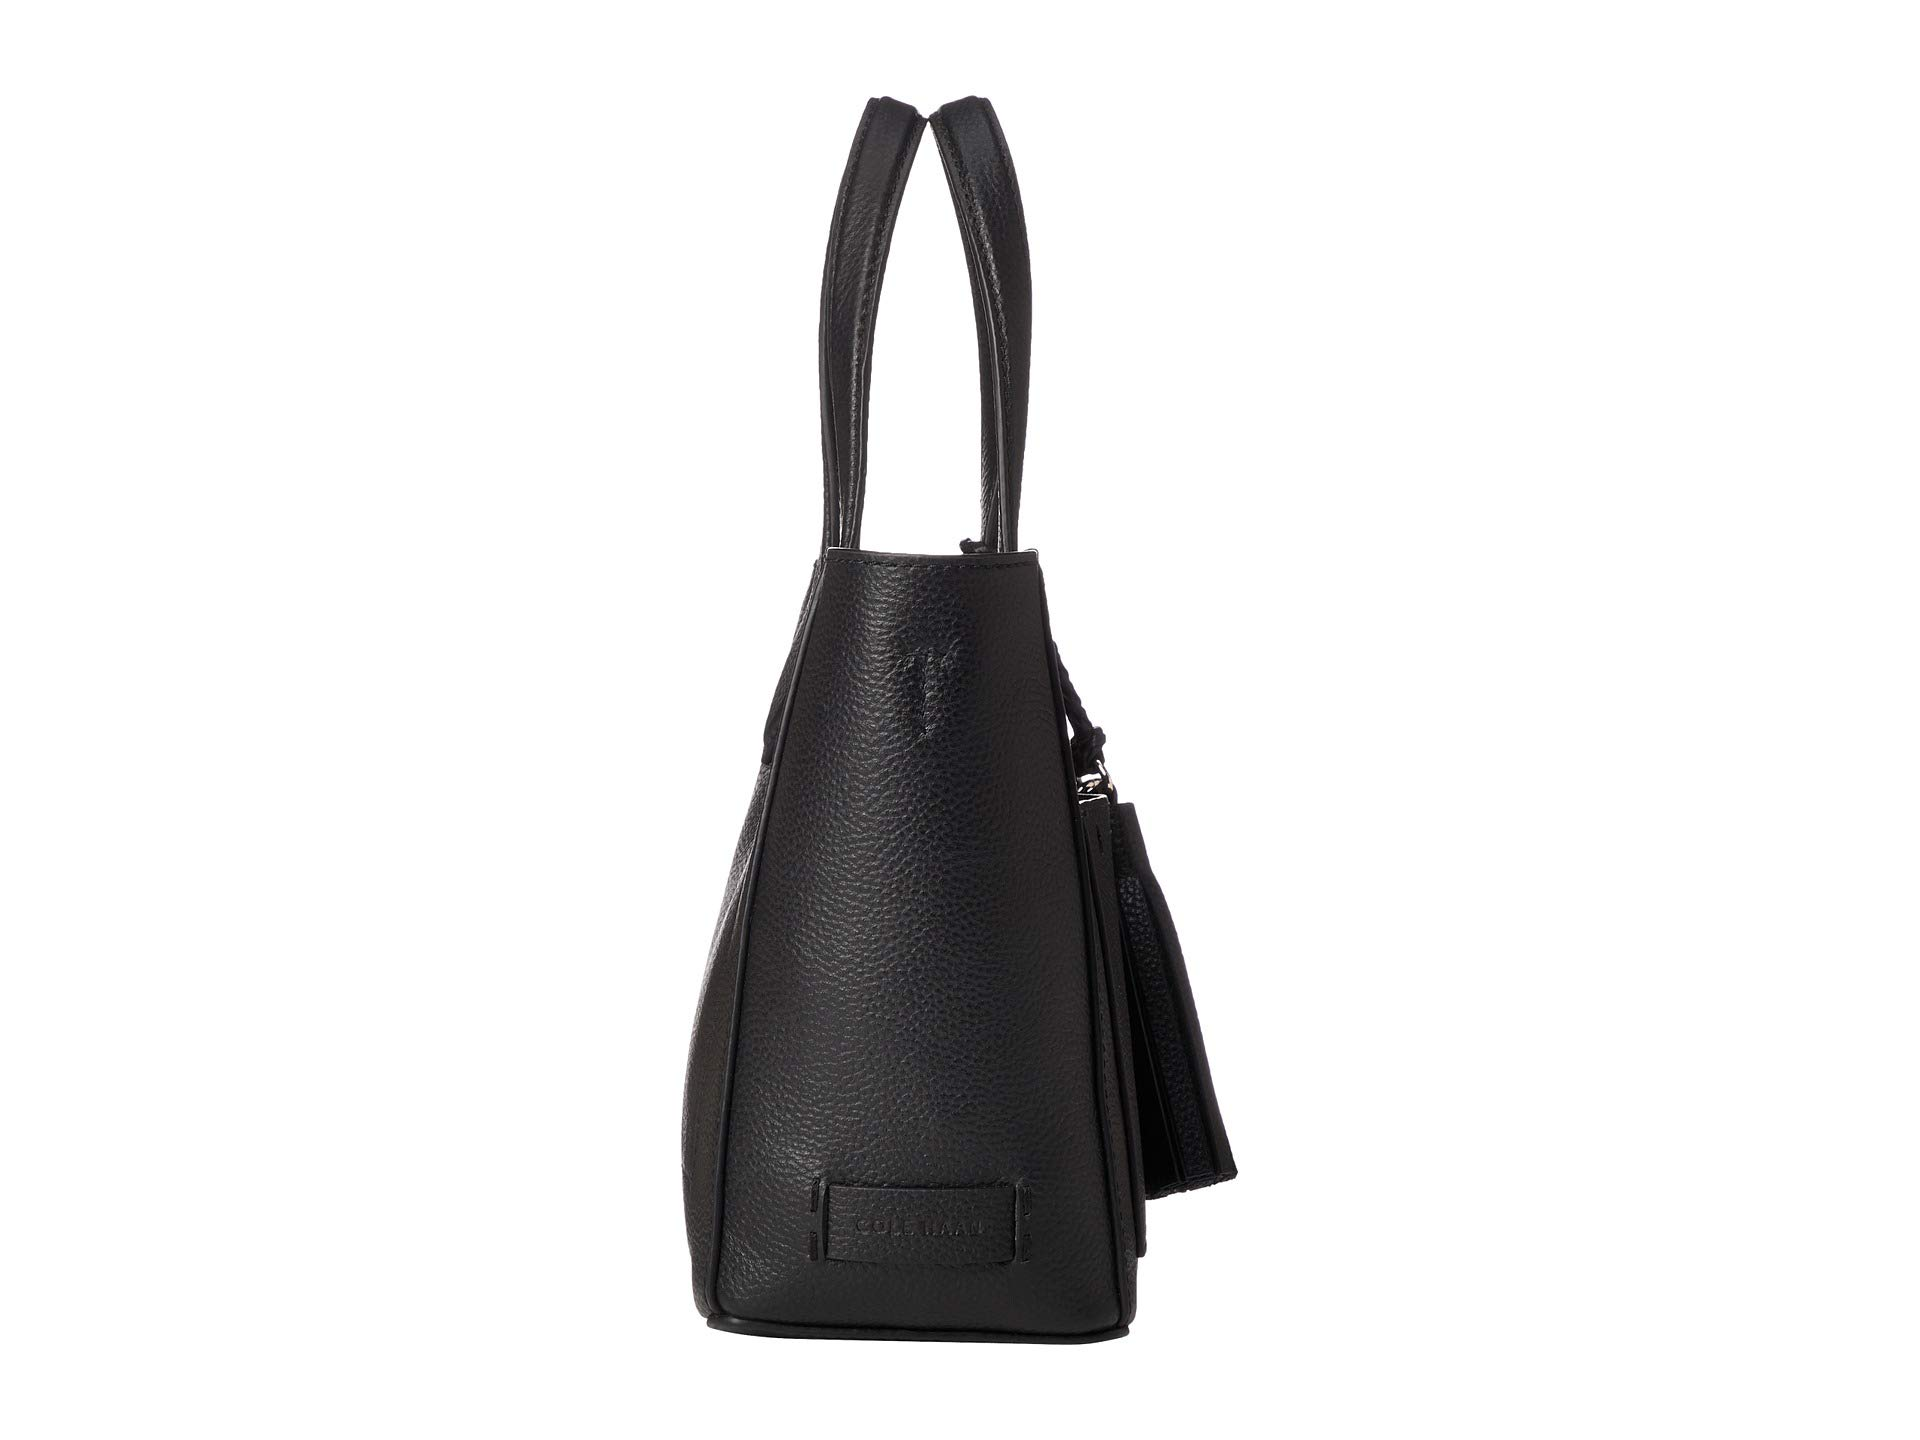 Cole Haan Tote Crossbody Mini Black Piper aavq1wr